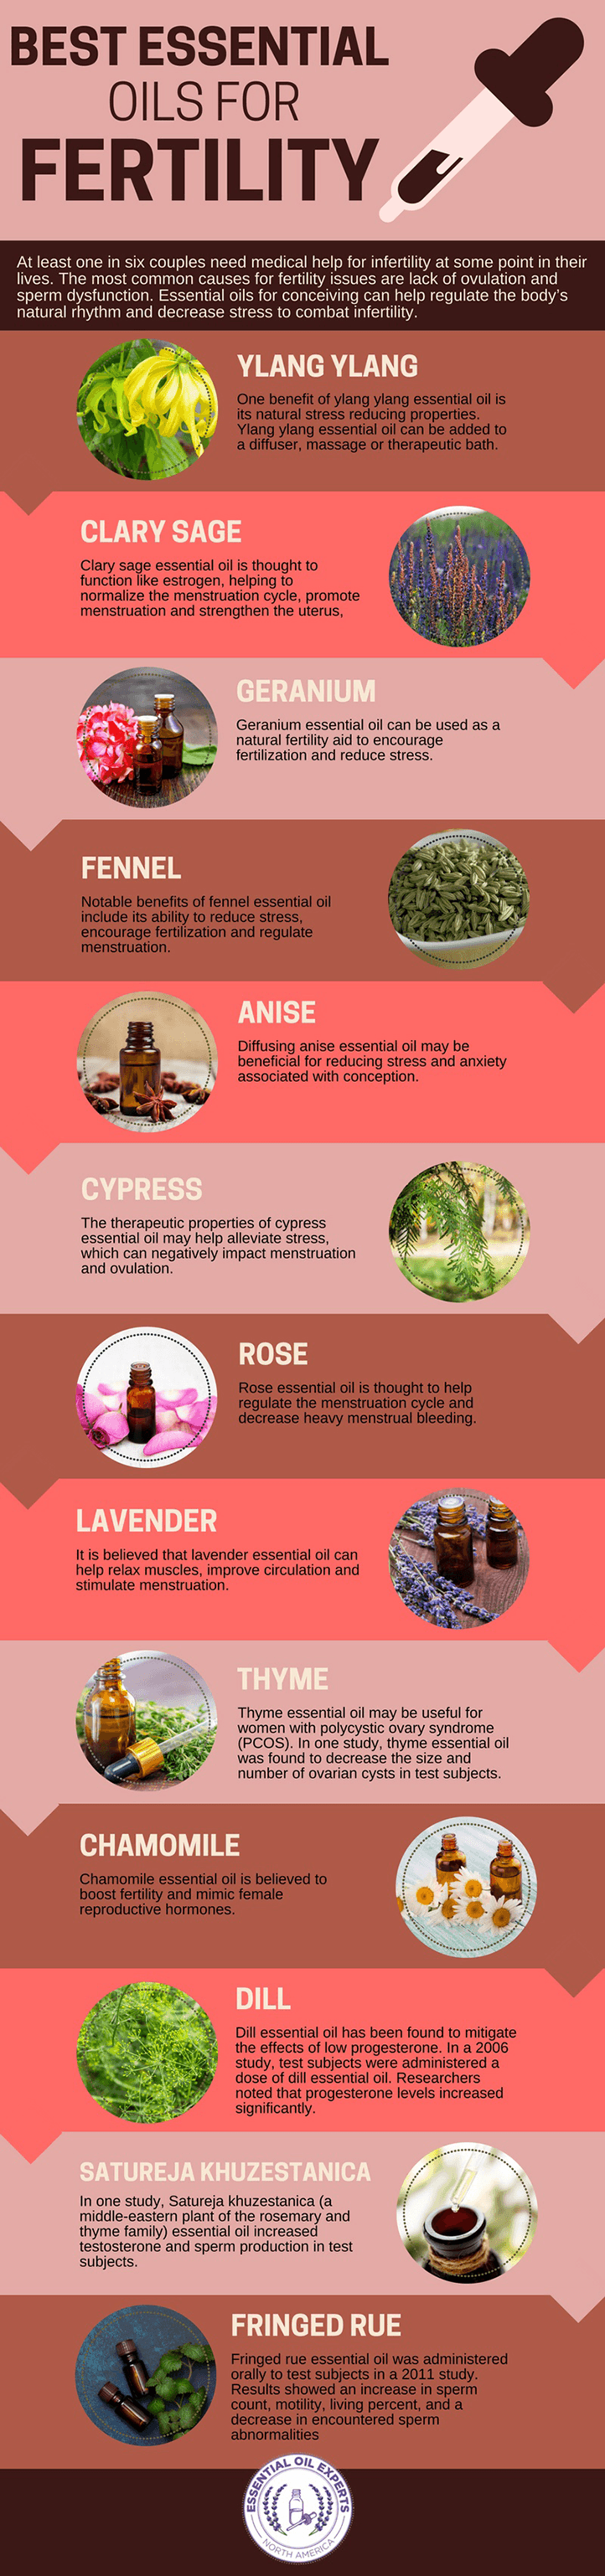 13 Best Essential Oils for Fertility | EssentialOilExperts.com